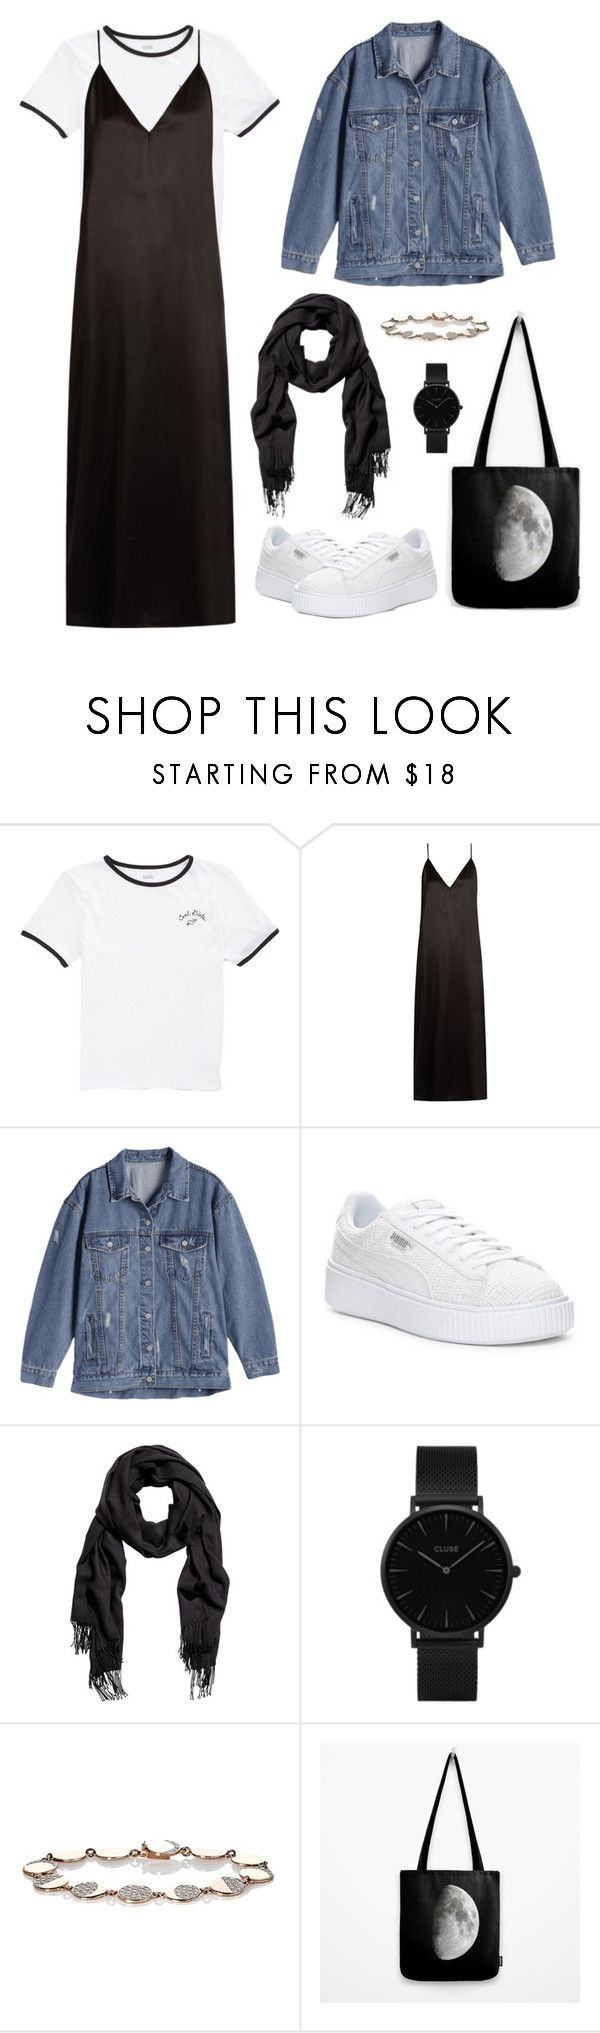 """""""Under the Night Sky"""" by afifahafifa on Polyvore featuring Vans, Raey, Puma, CLUSE and Pamela Love"""